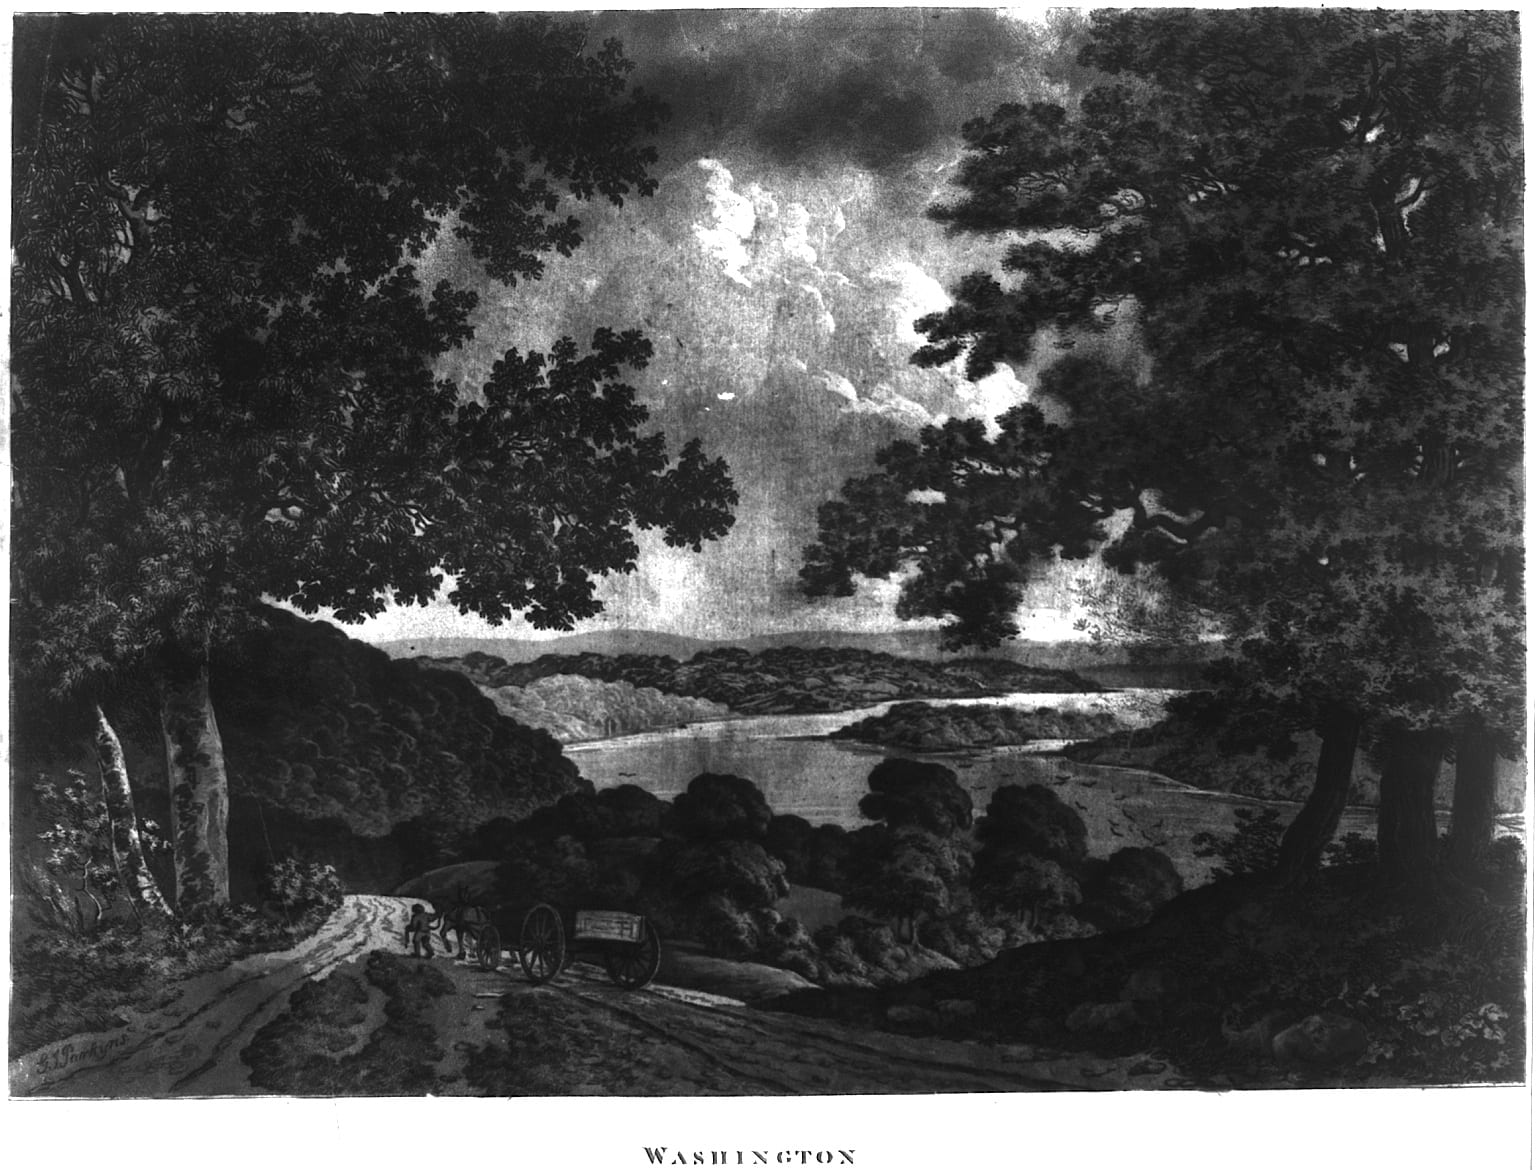 view of the Potomac River in the 1790s